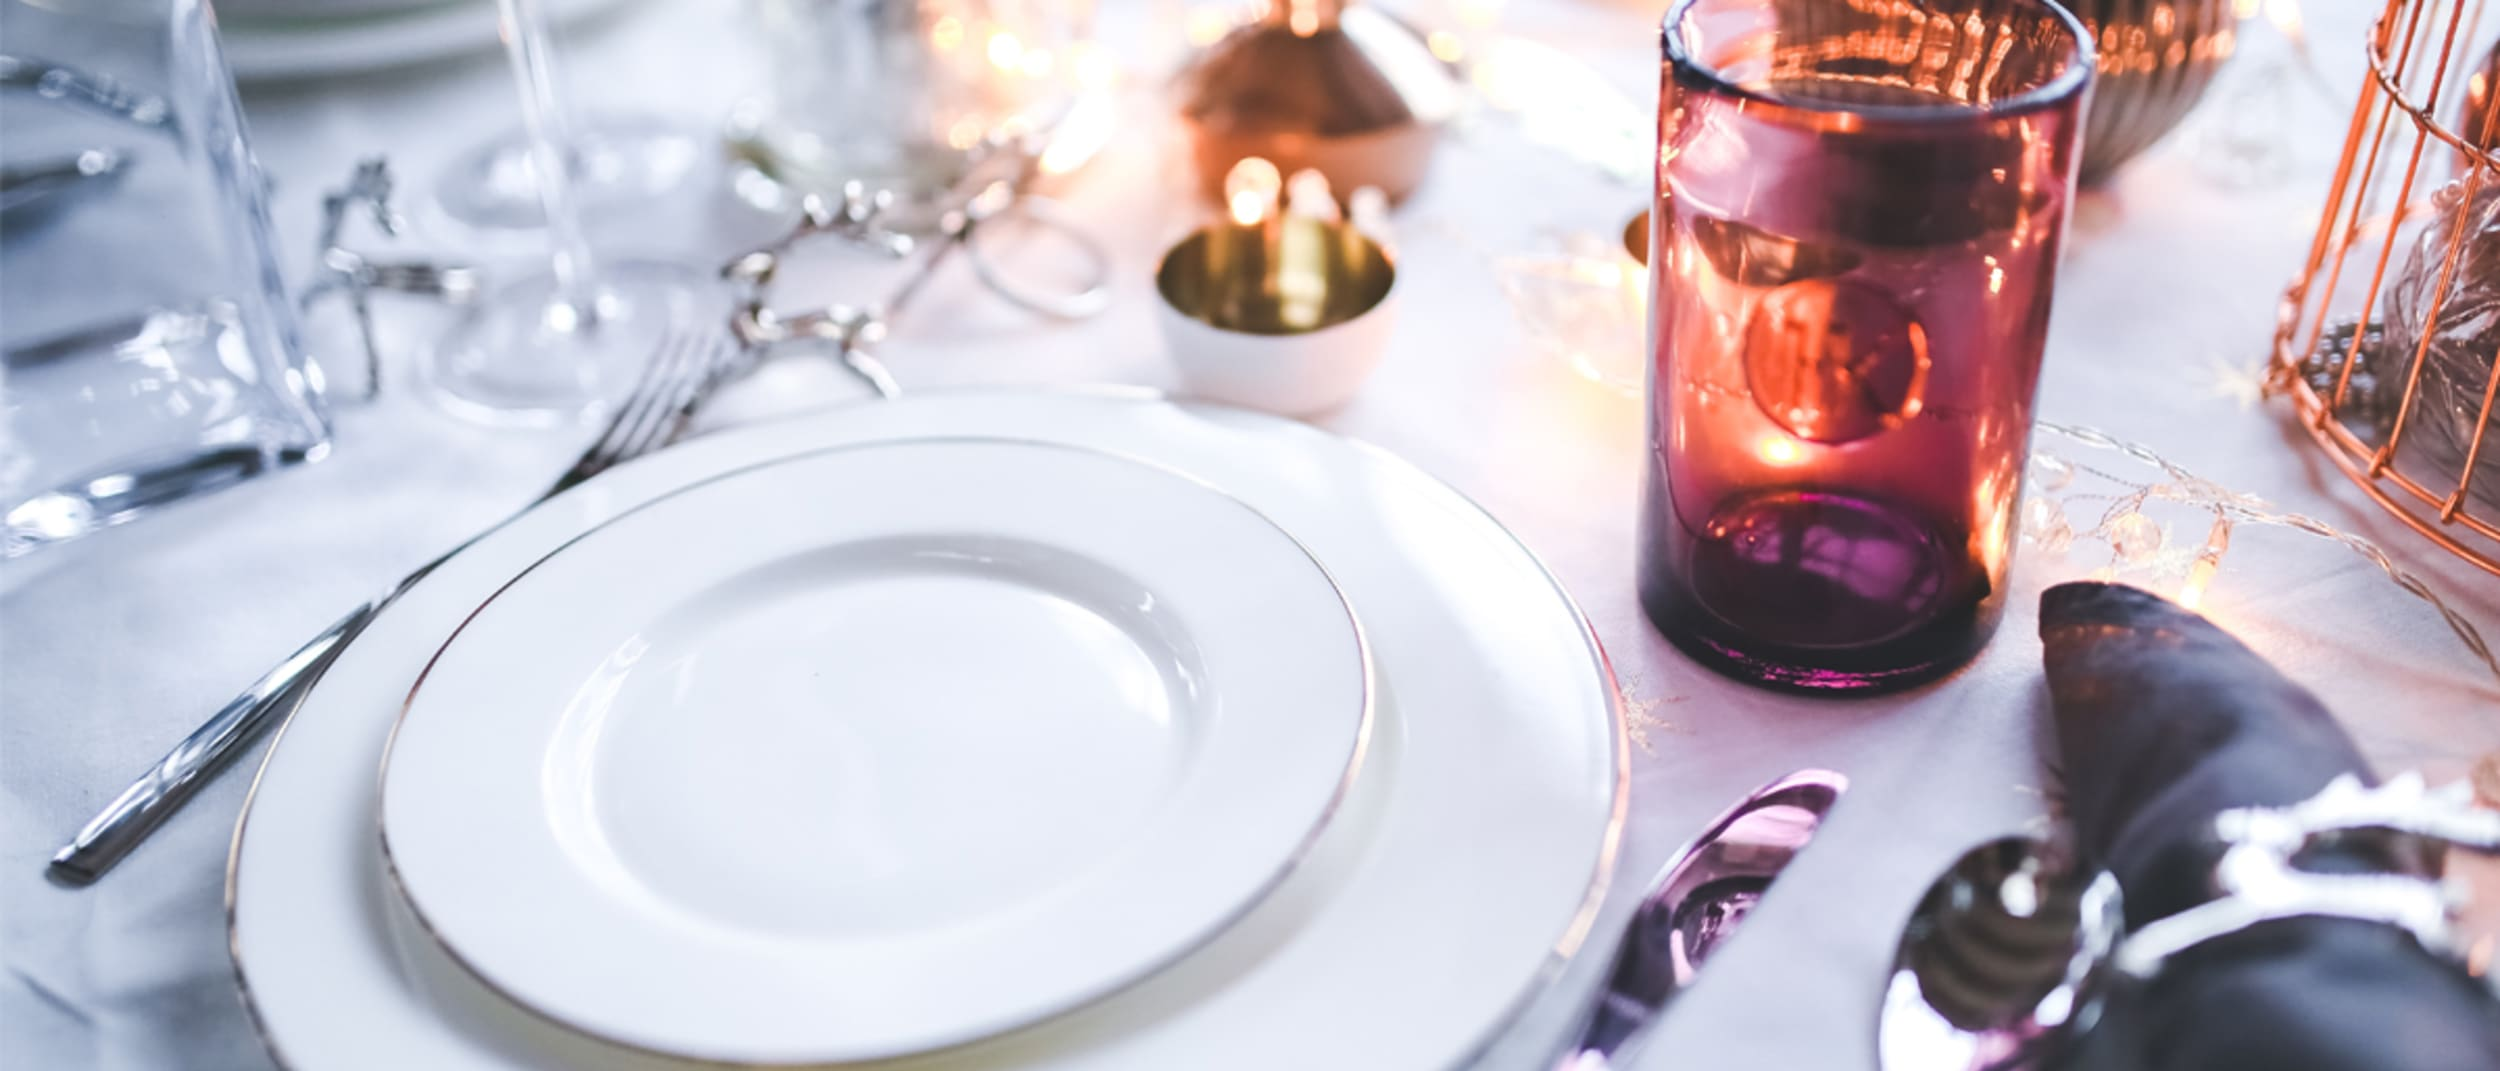 Mind your manners: 10 dining rules you should be following